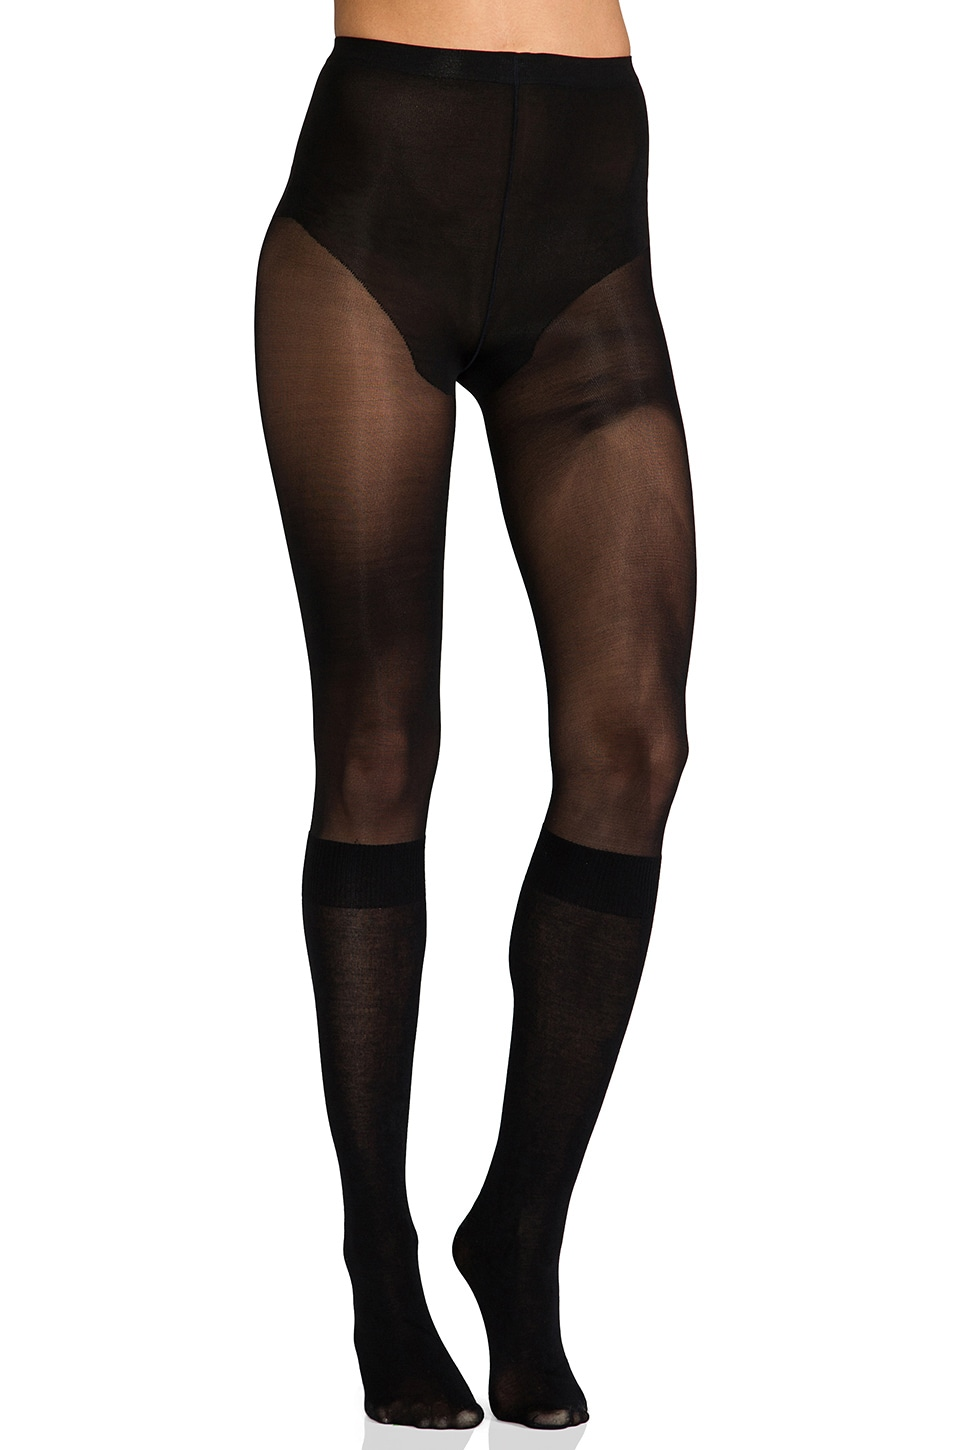 Pretty Polly Secret Socks Over the Knee in Black